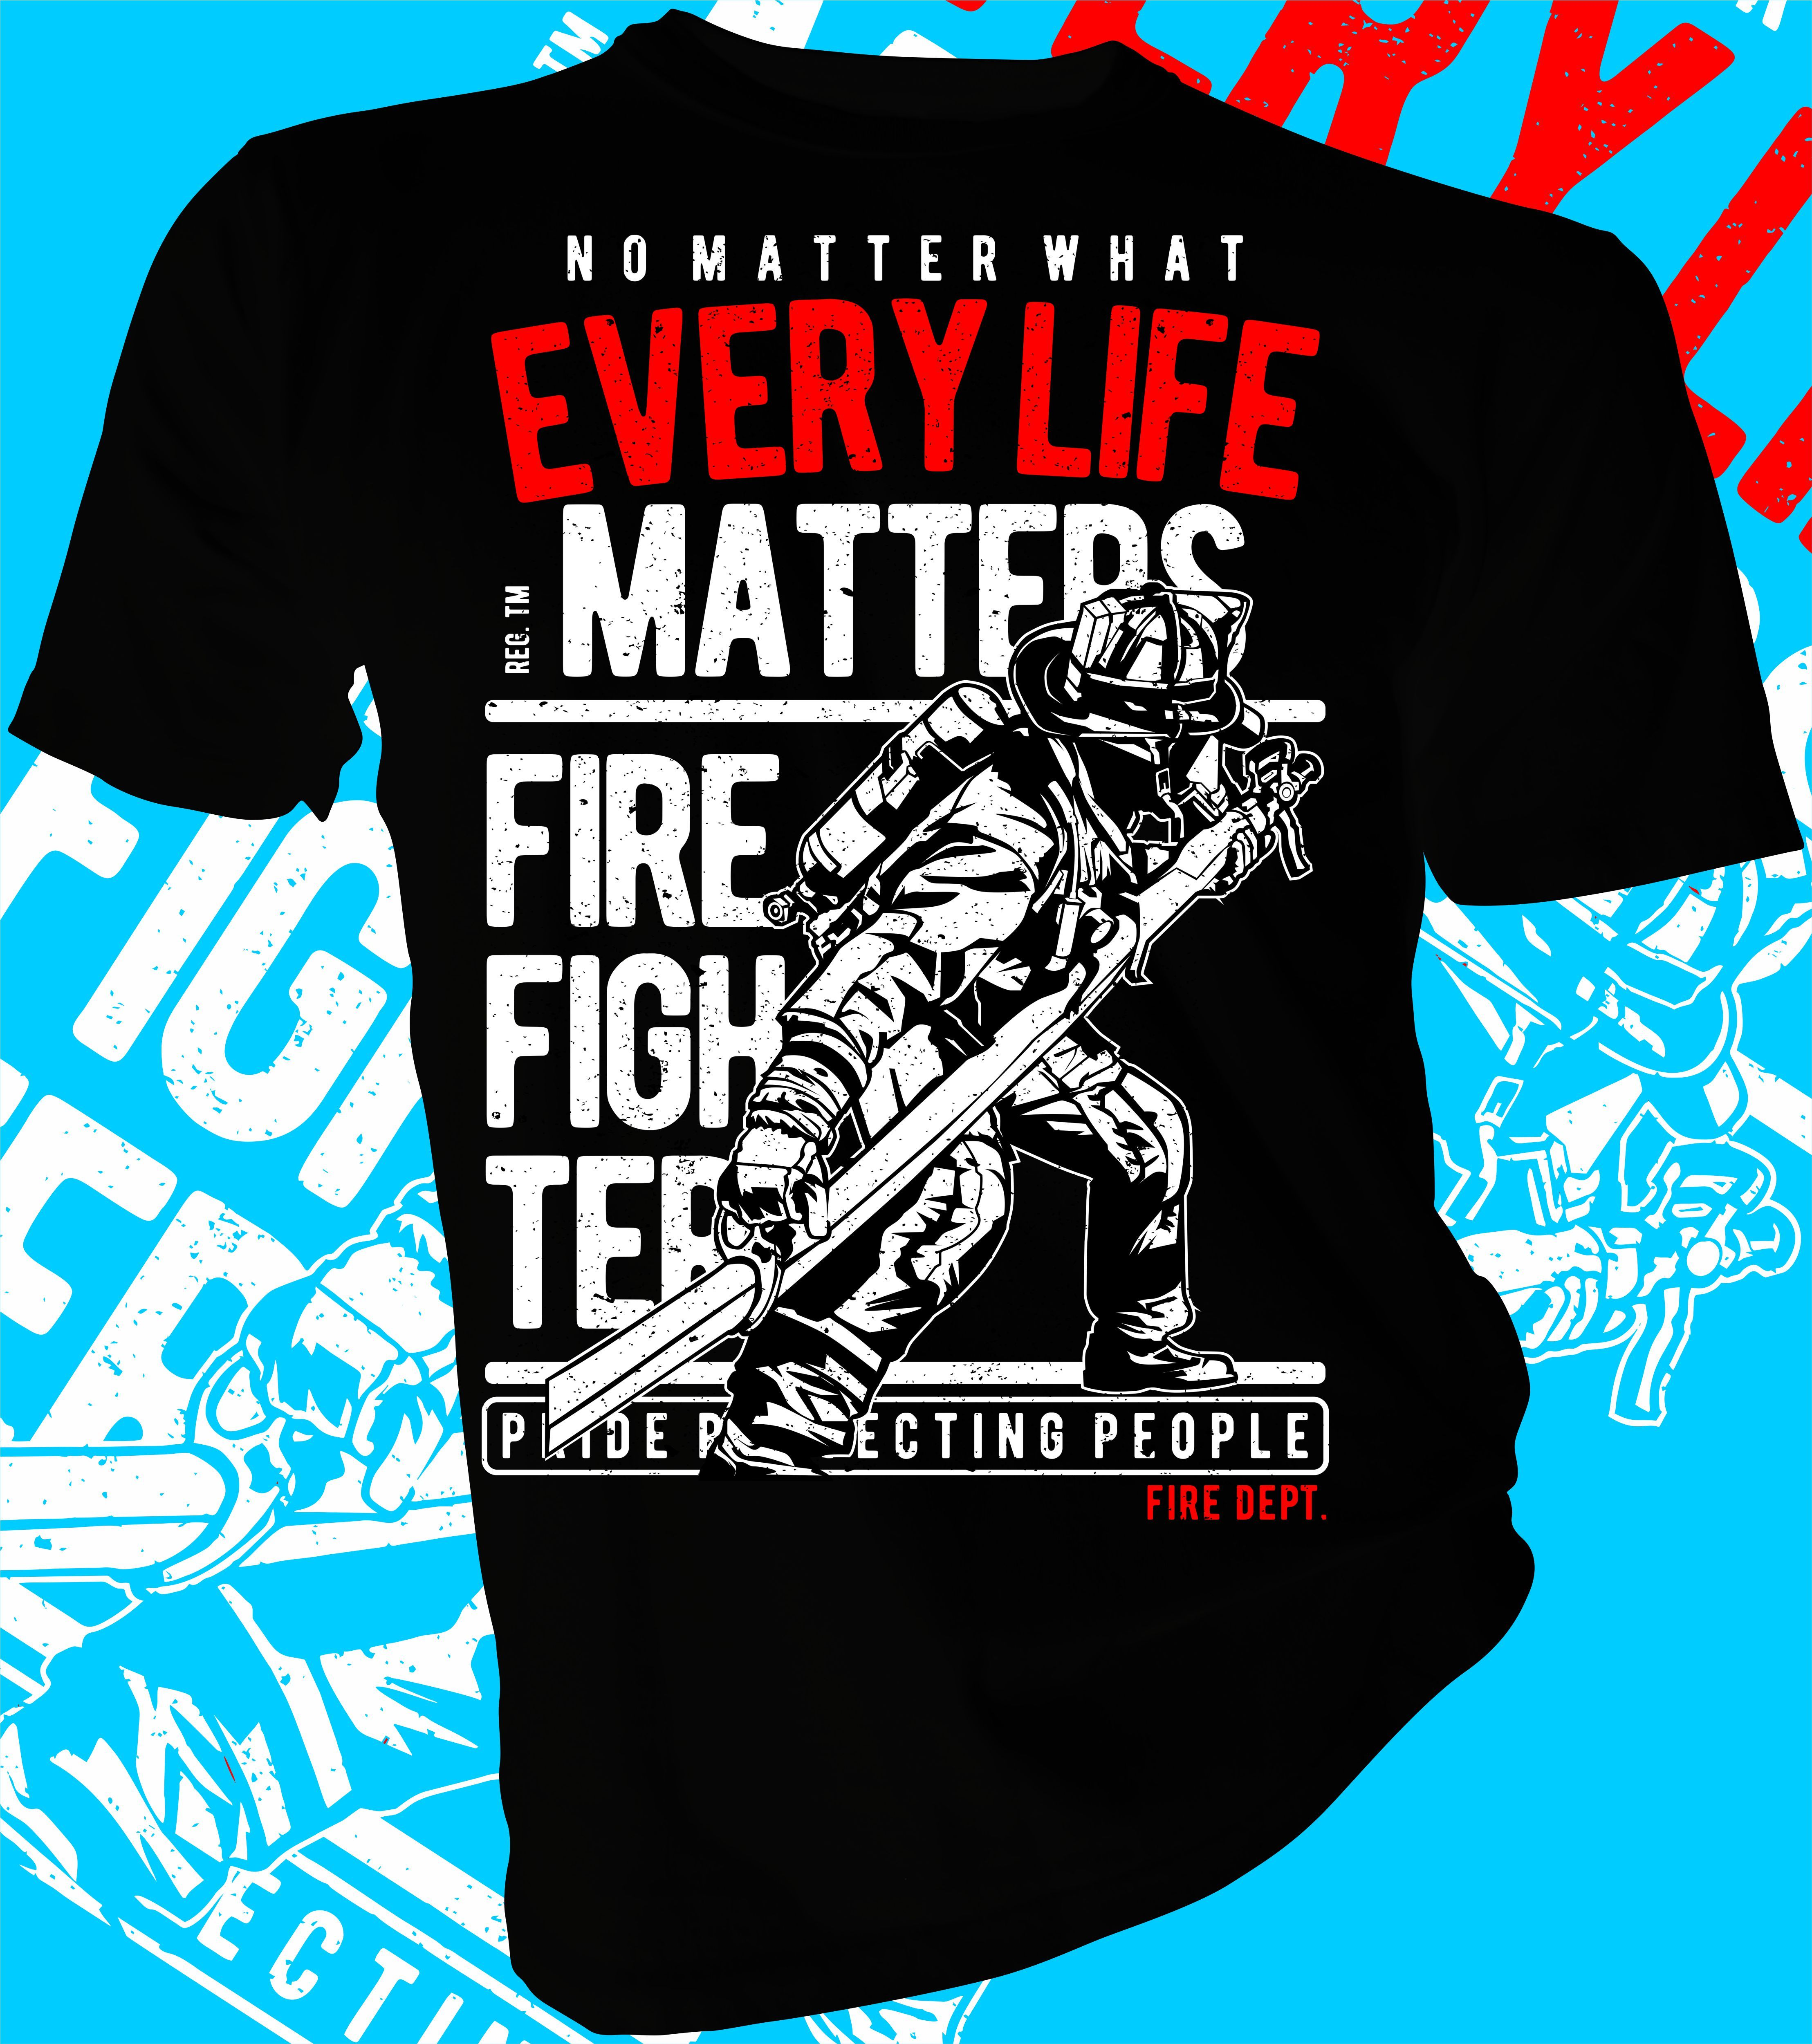 Every Life Matters Fire Fighters Designer T Shirt Sizes From 3 4